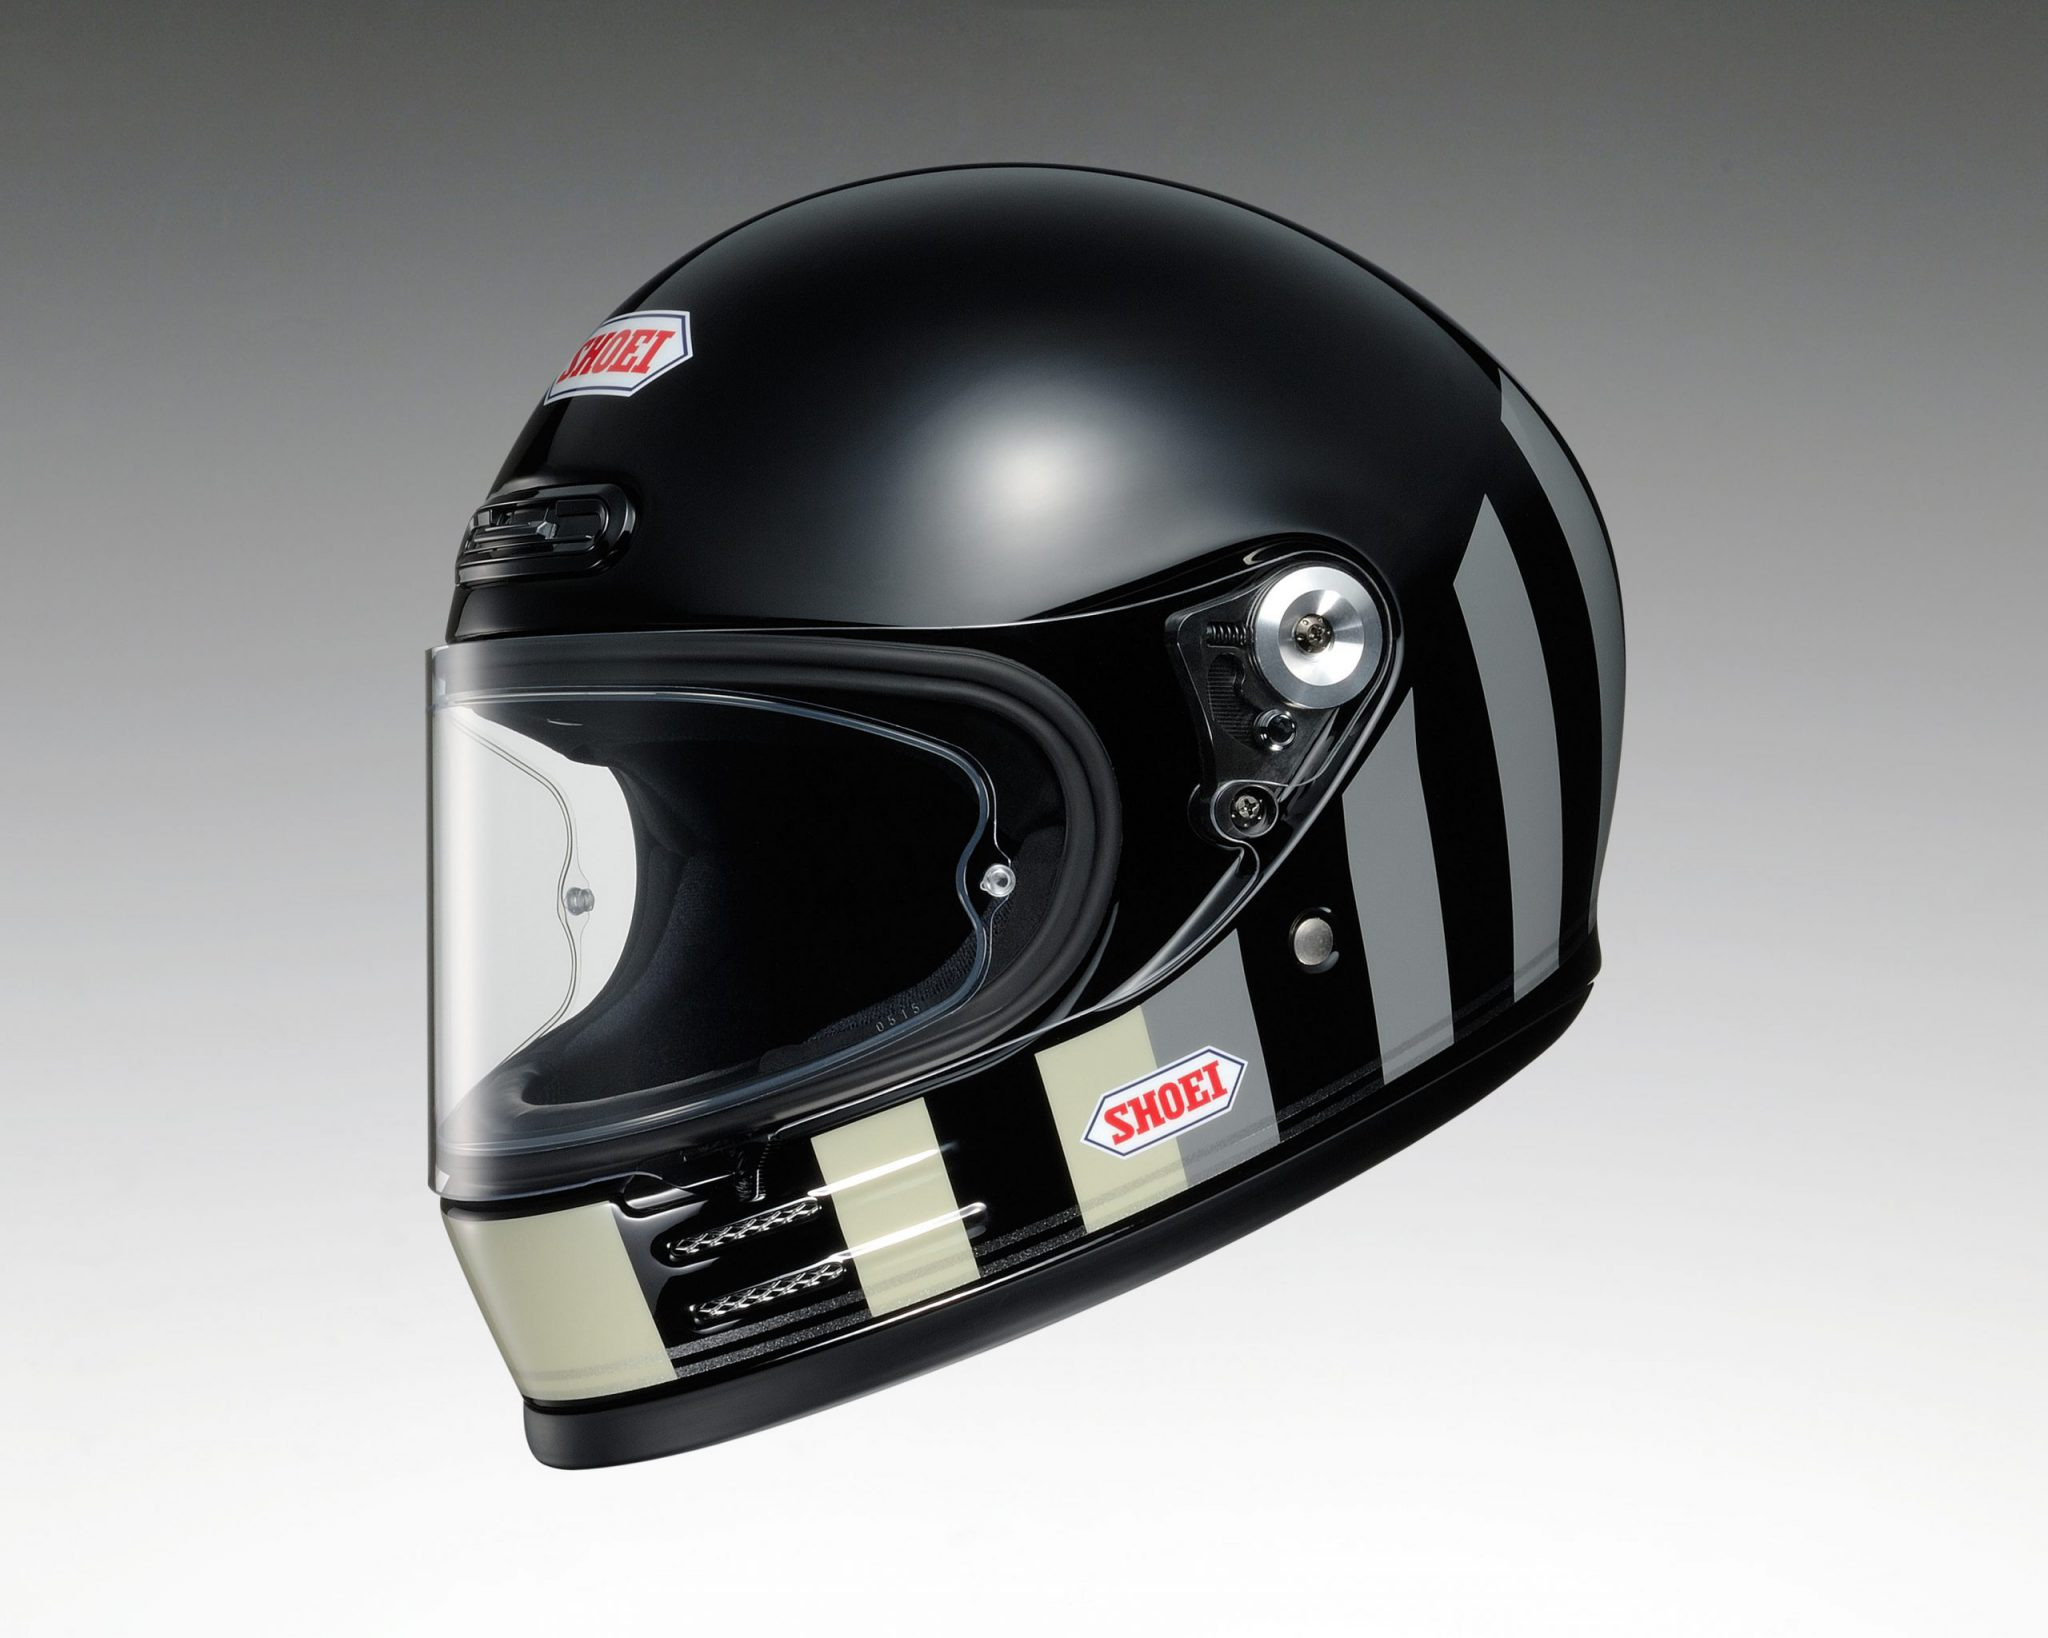 Shoei presenteert 'Vintage' Glamster